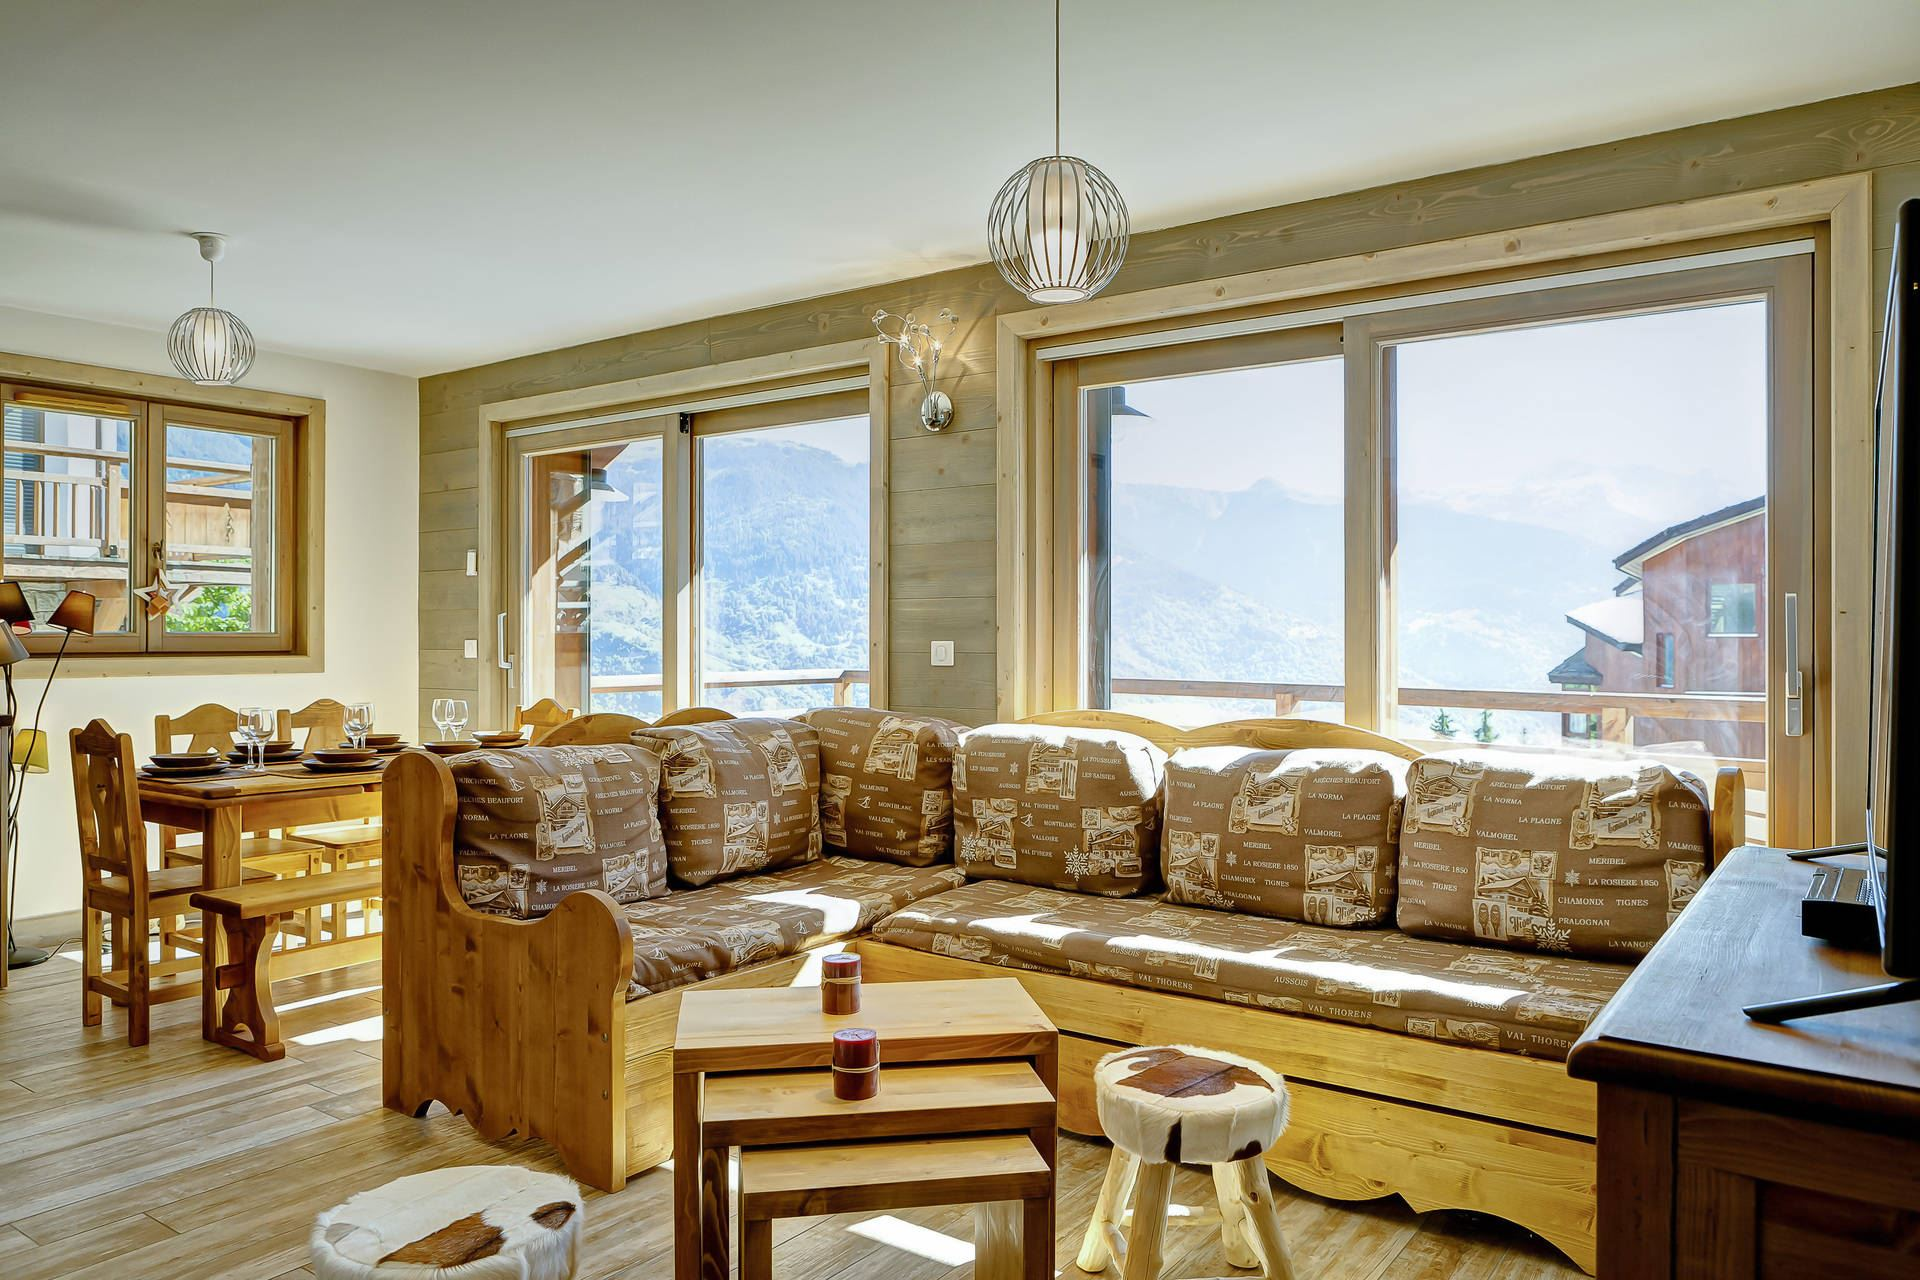 3 rooms, 7 people / Rocher blanc A6 (Mountain of charm)